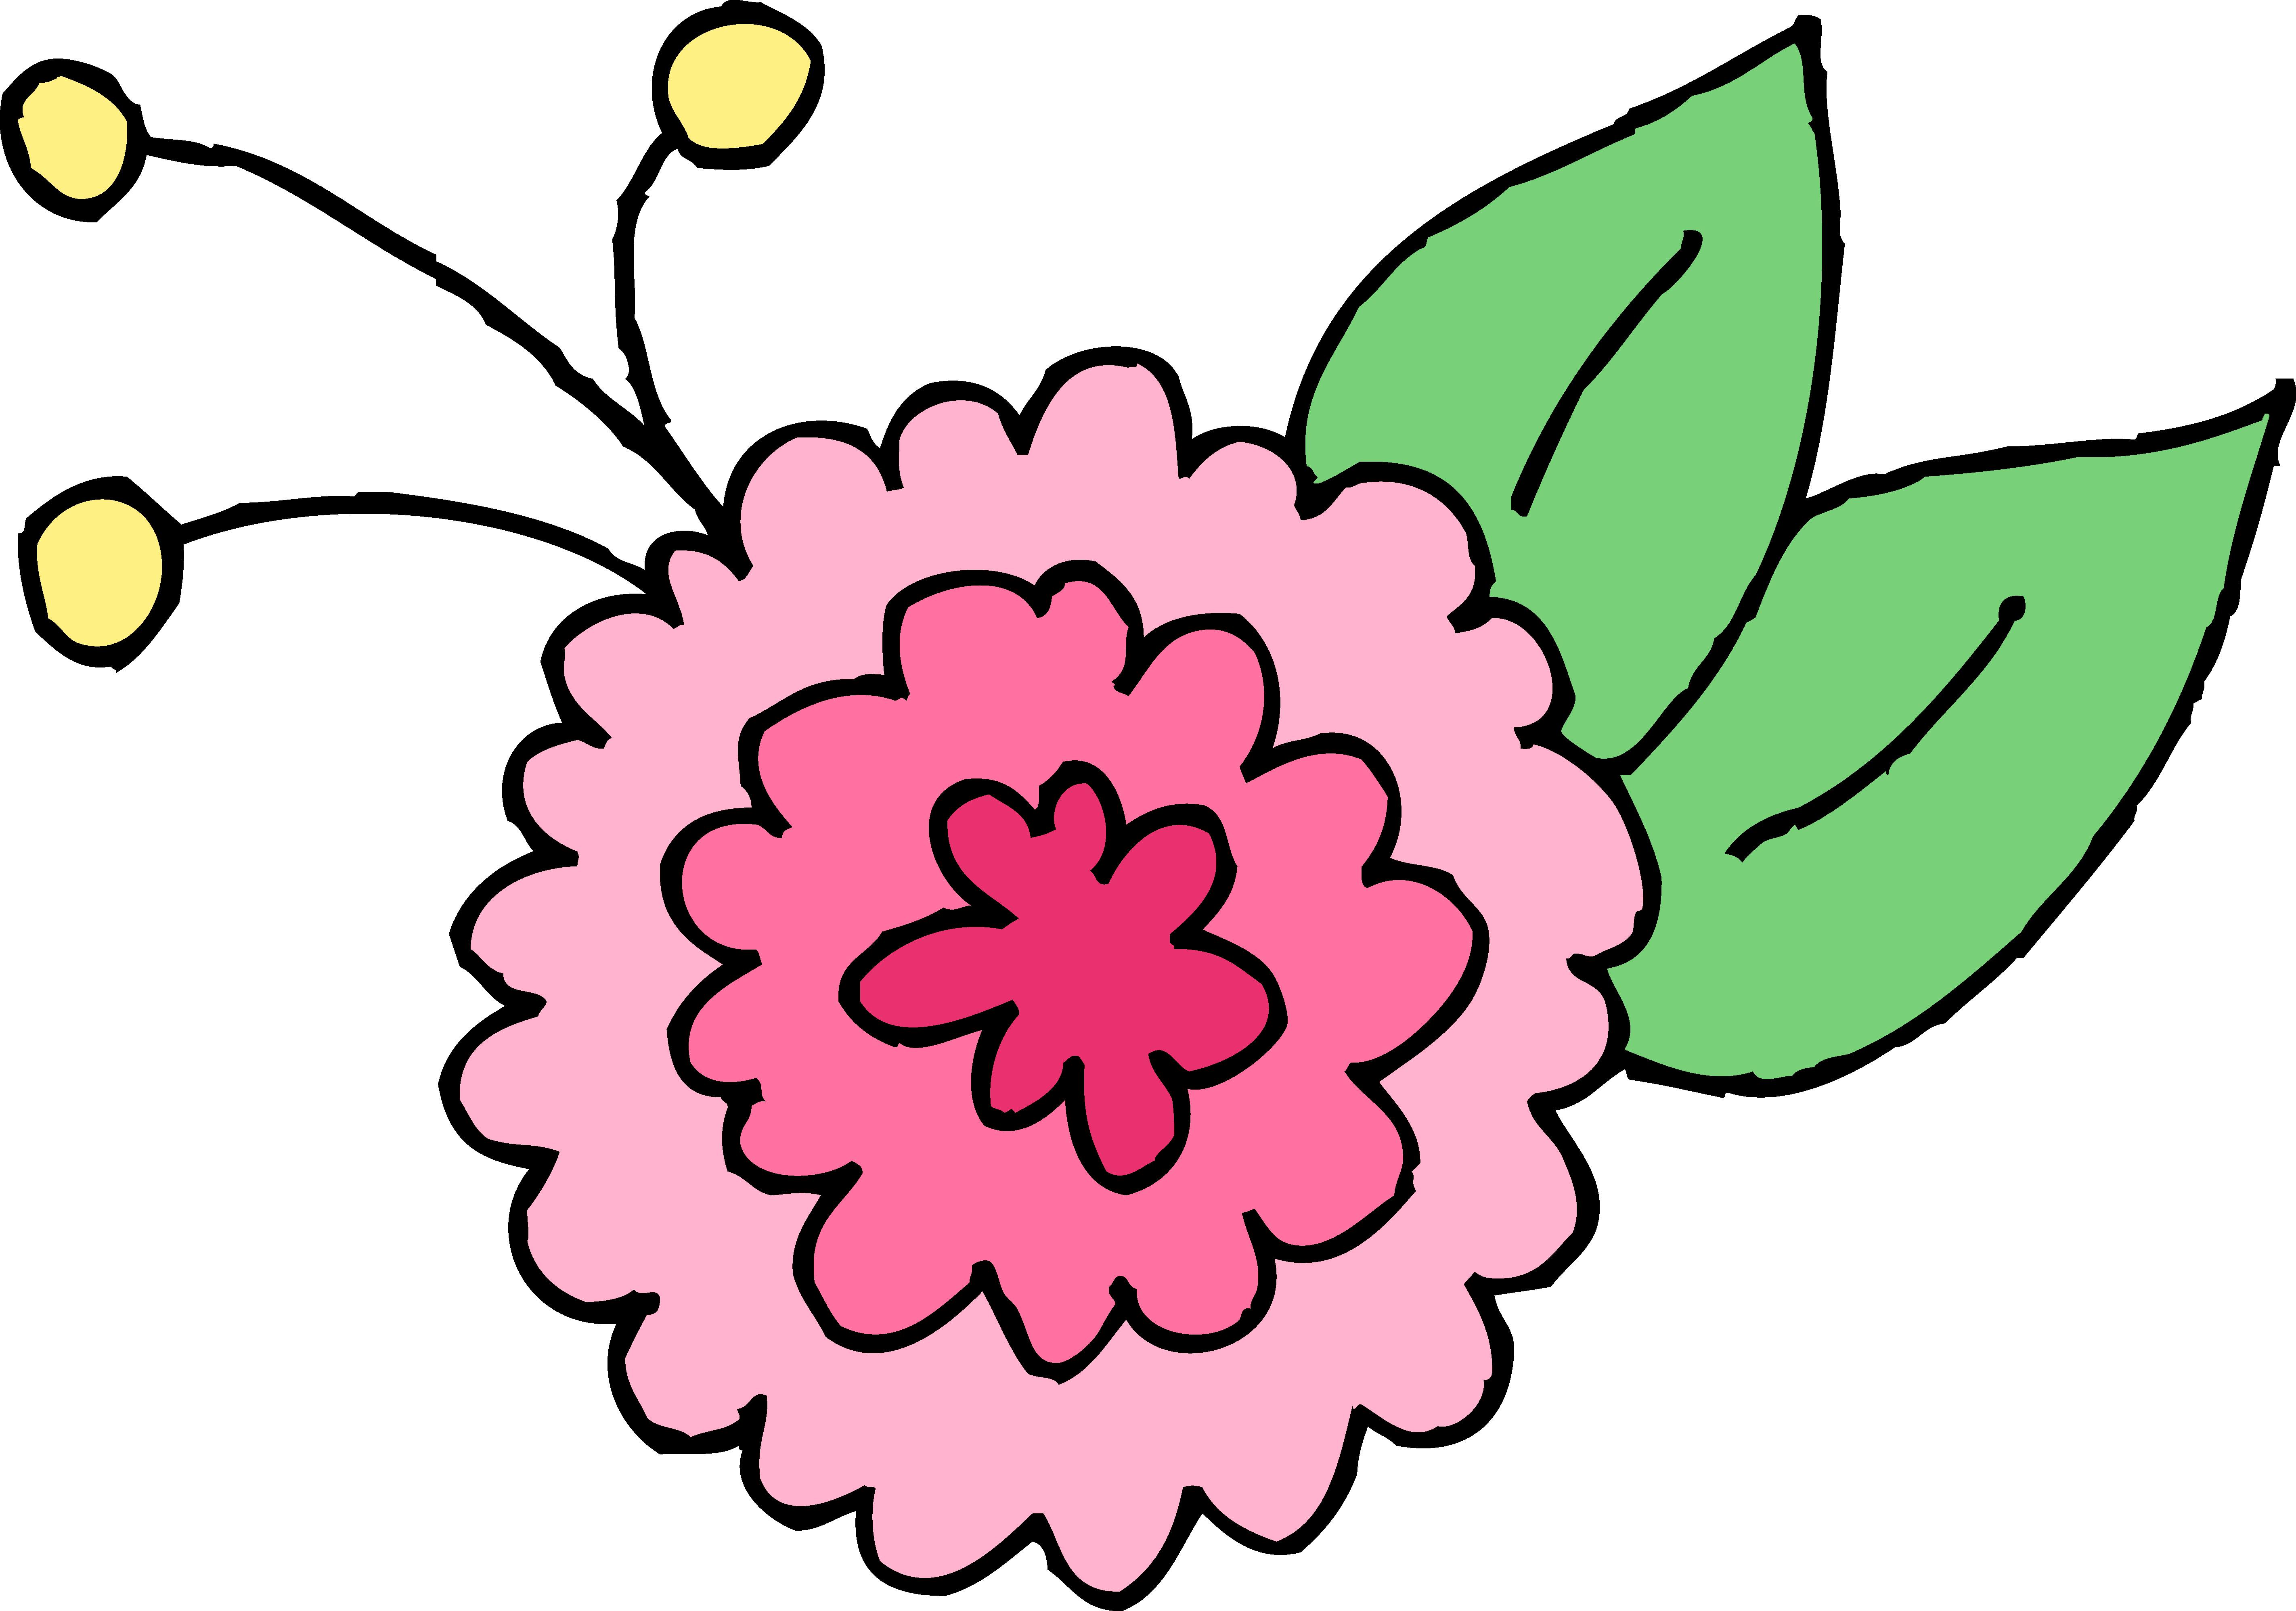 Free clipart chrysanthemum png download Cute Pink Chrysanthemum Flower - Free Clip Art png download